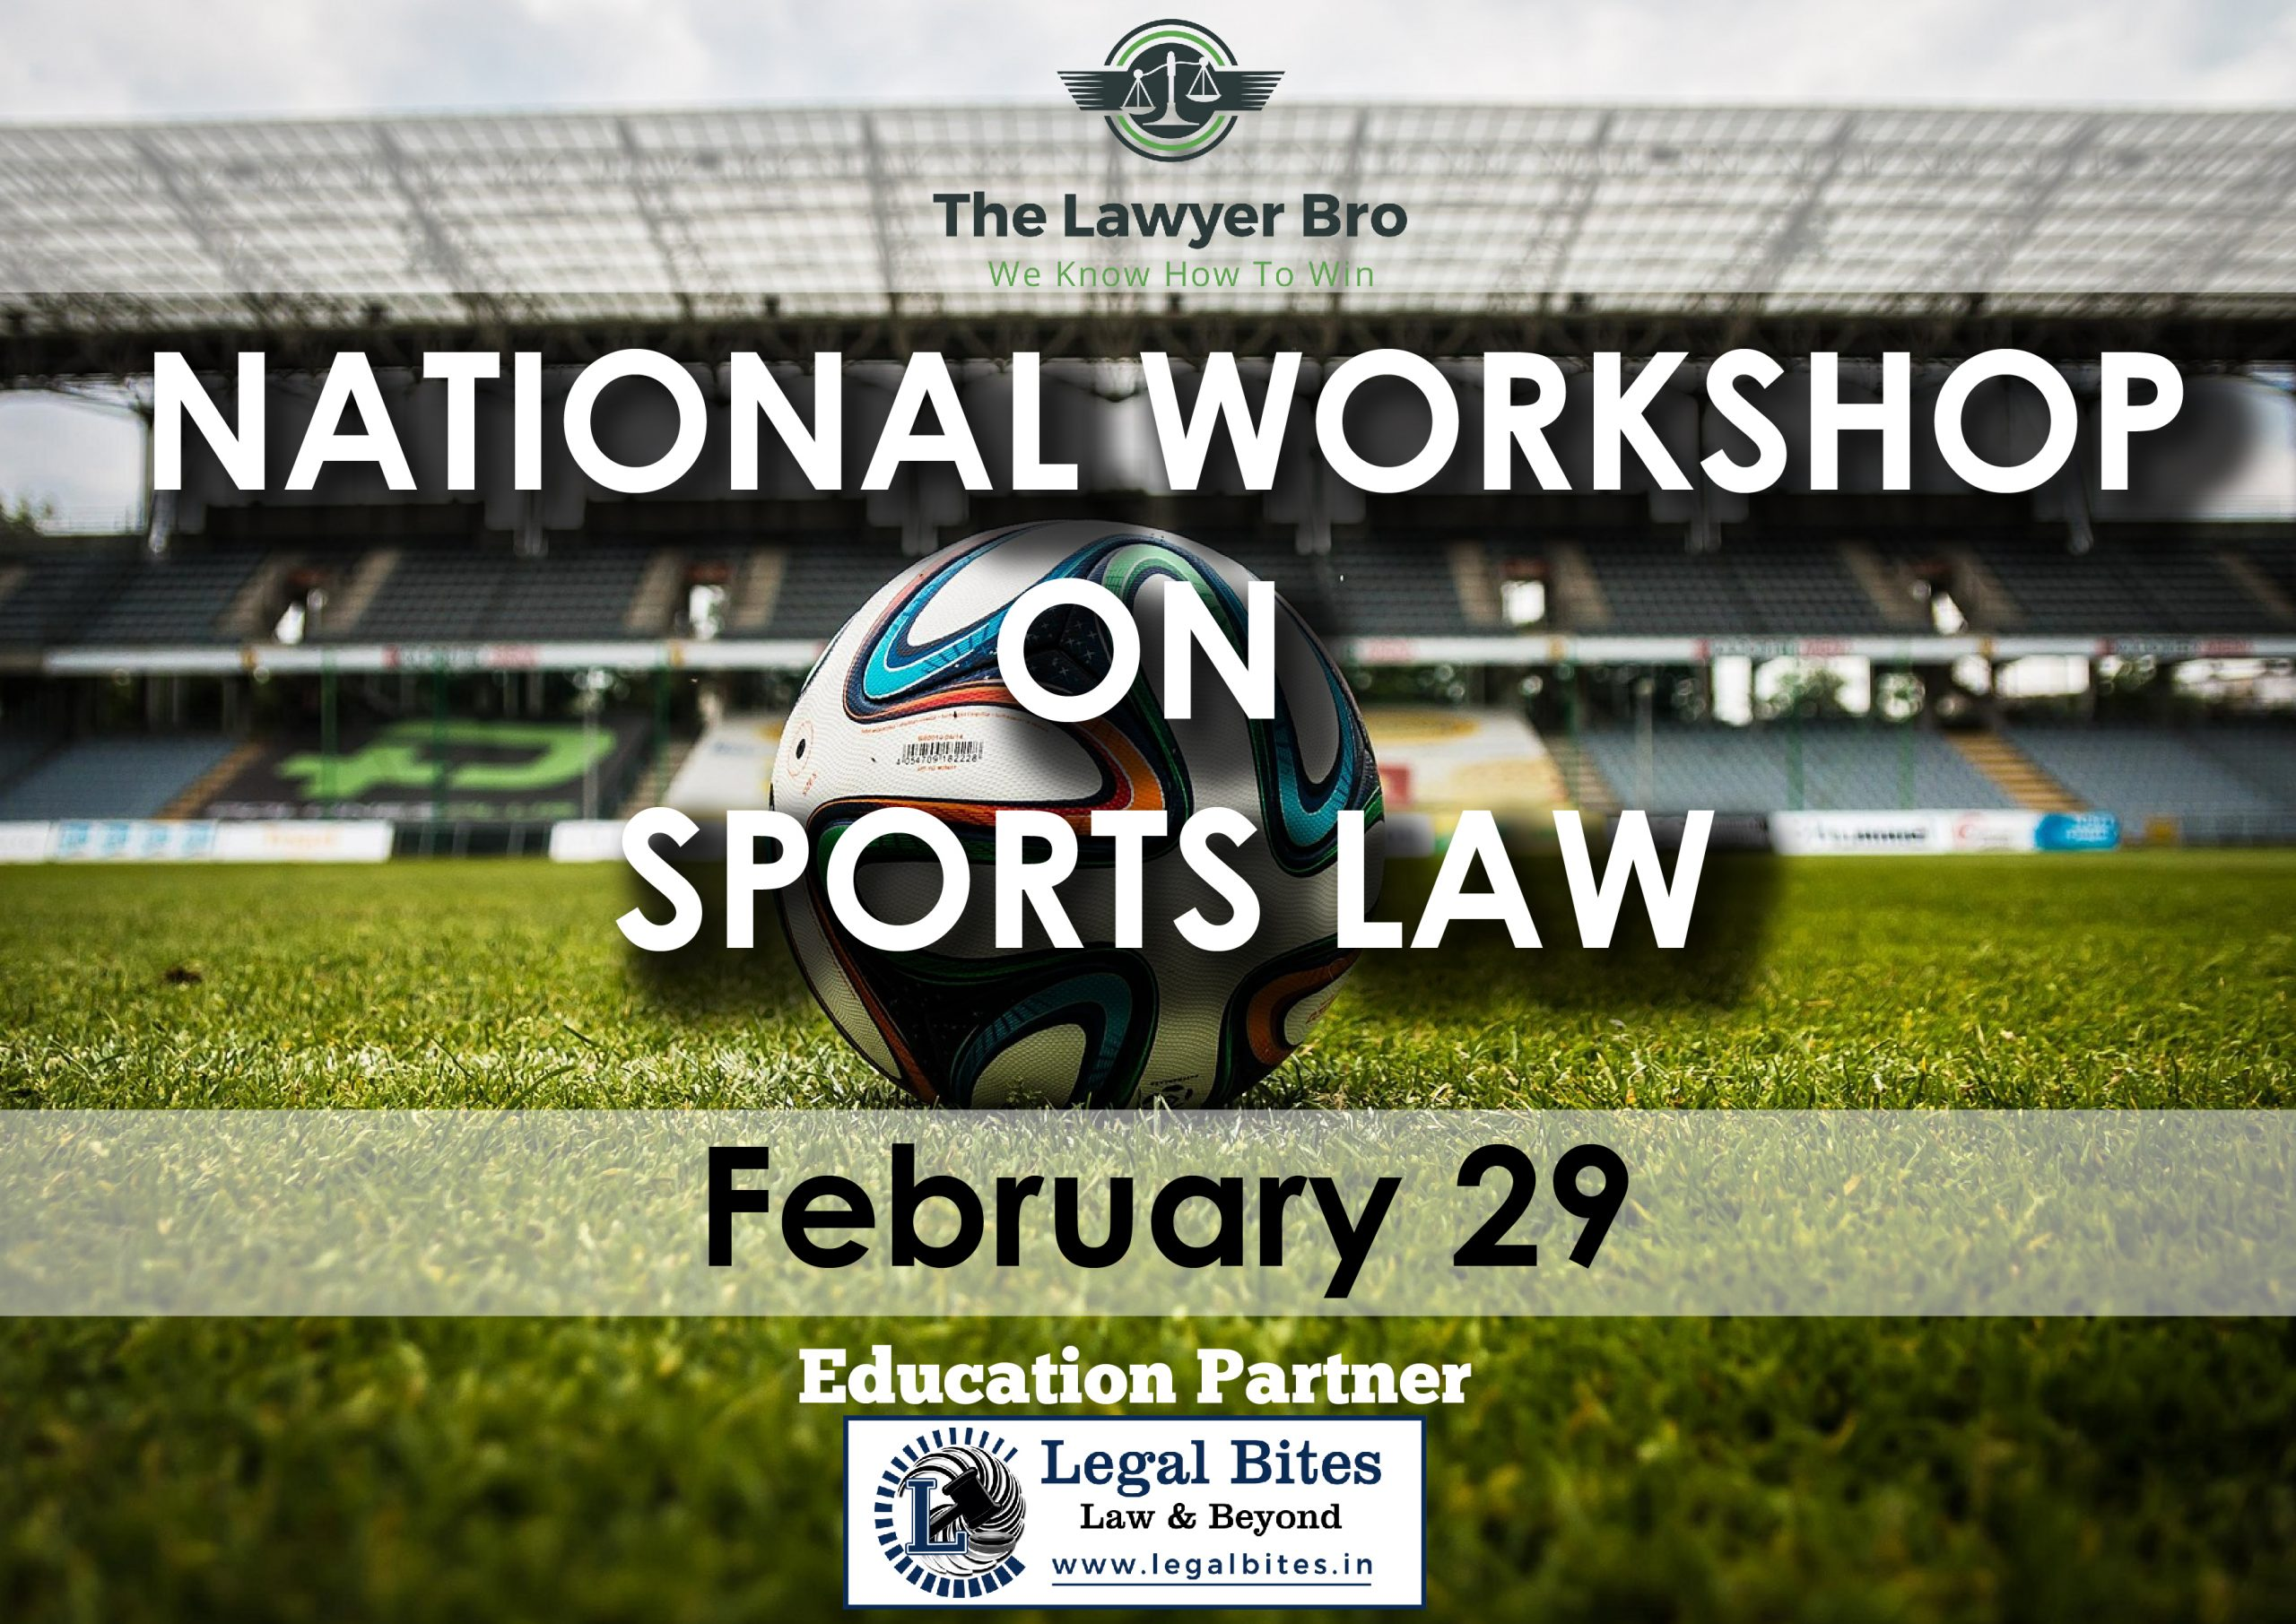 National Workshop on Sports Law: Scope & Career